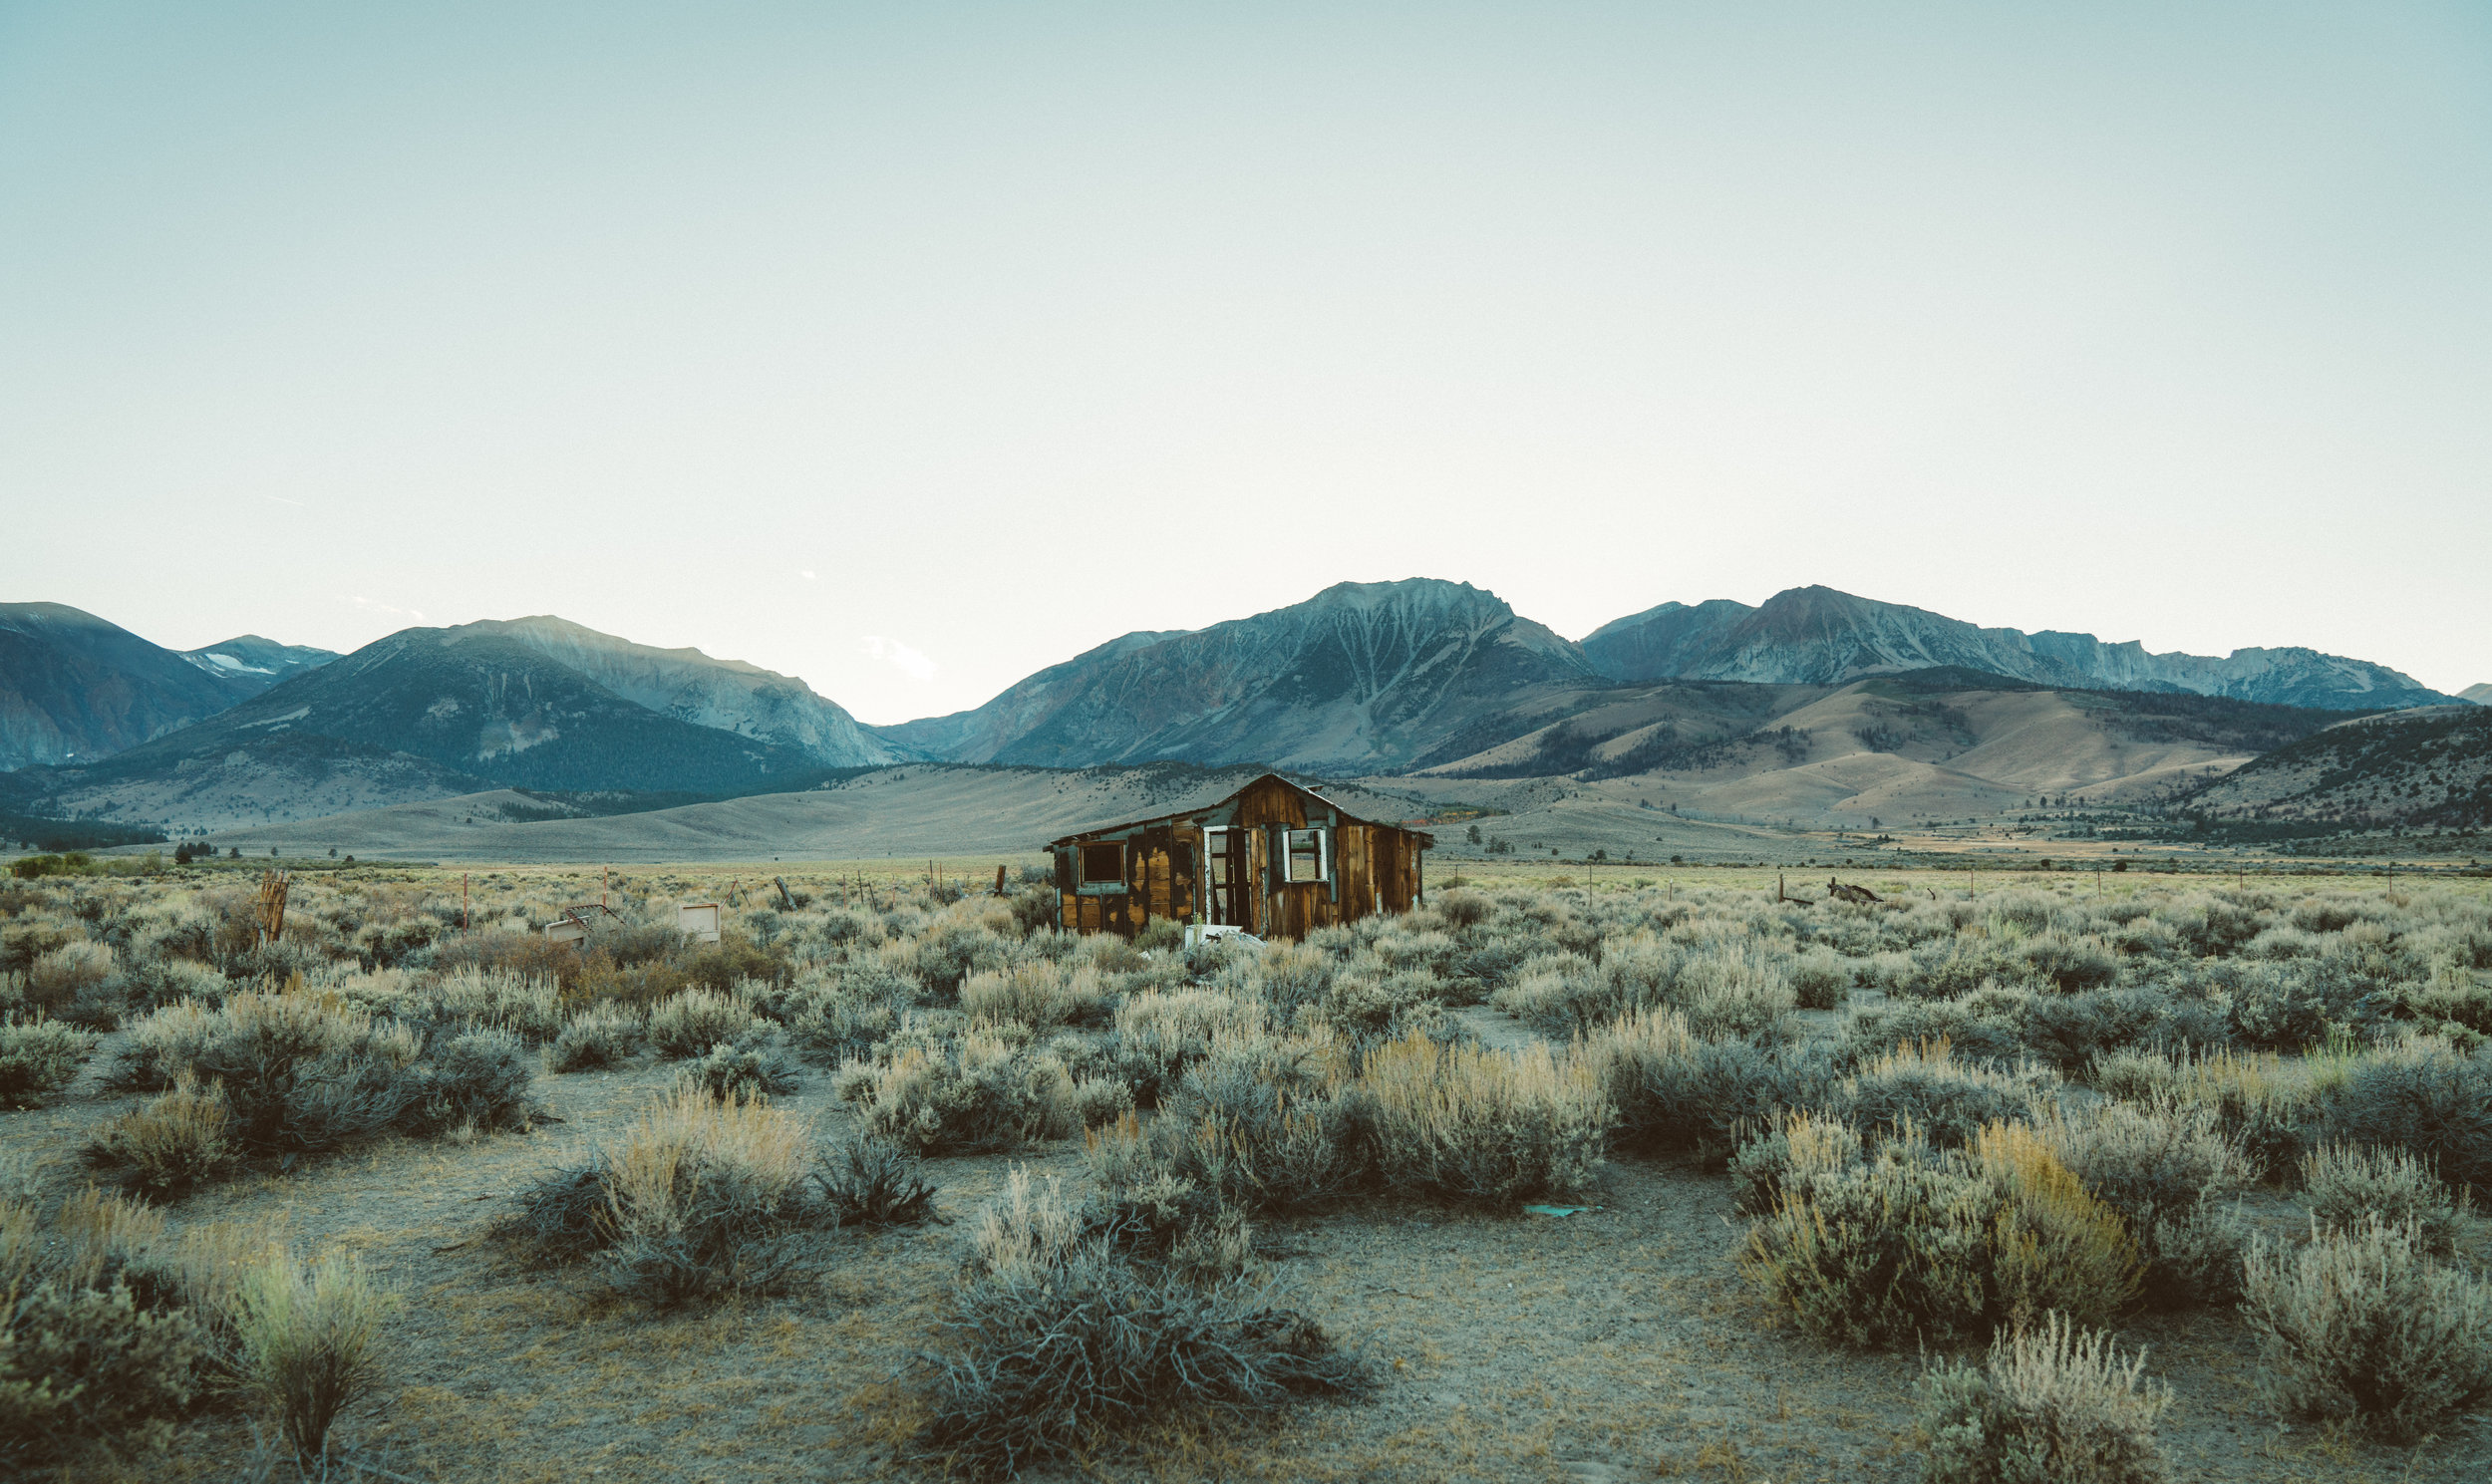 After leaving Yosemite we stopped along the highway after I spotted this abandoned building. This could be my favourite photo I've taken so far. The Sierra Nevada mountain range visible in the background.